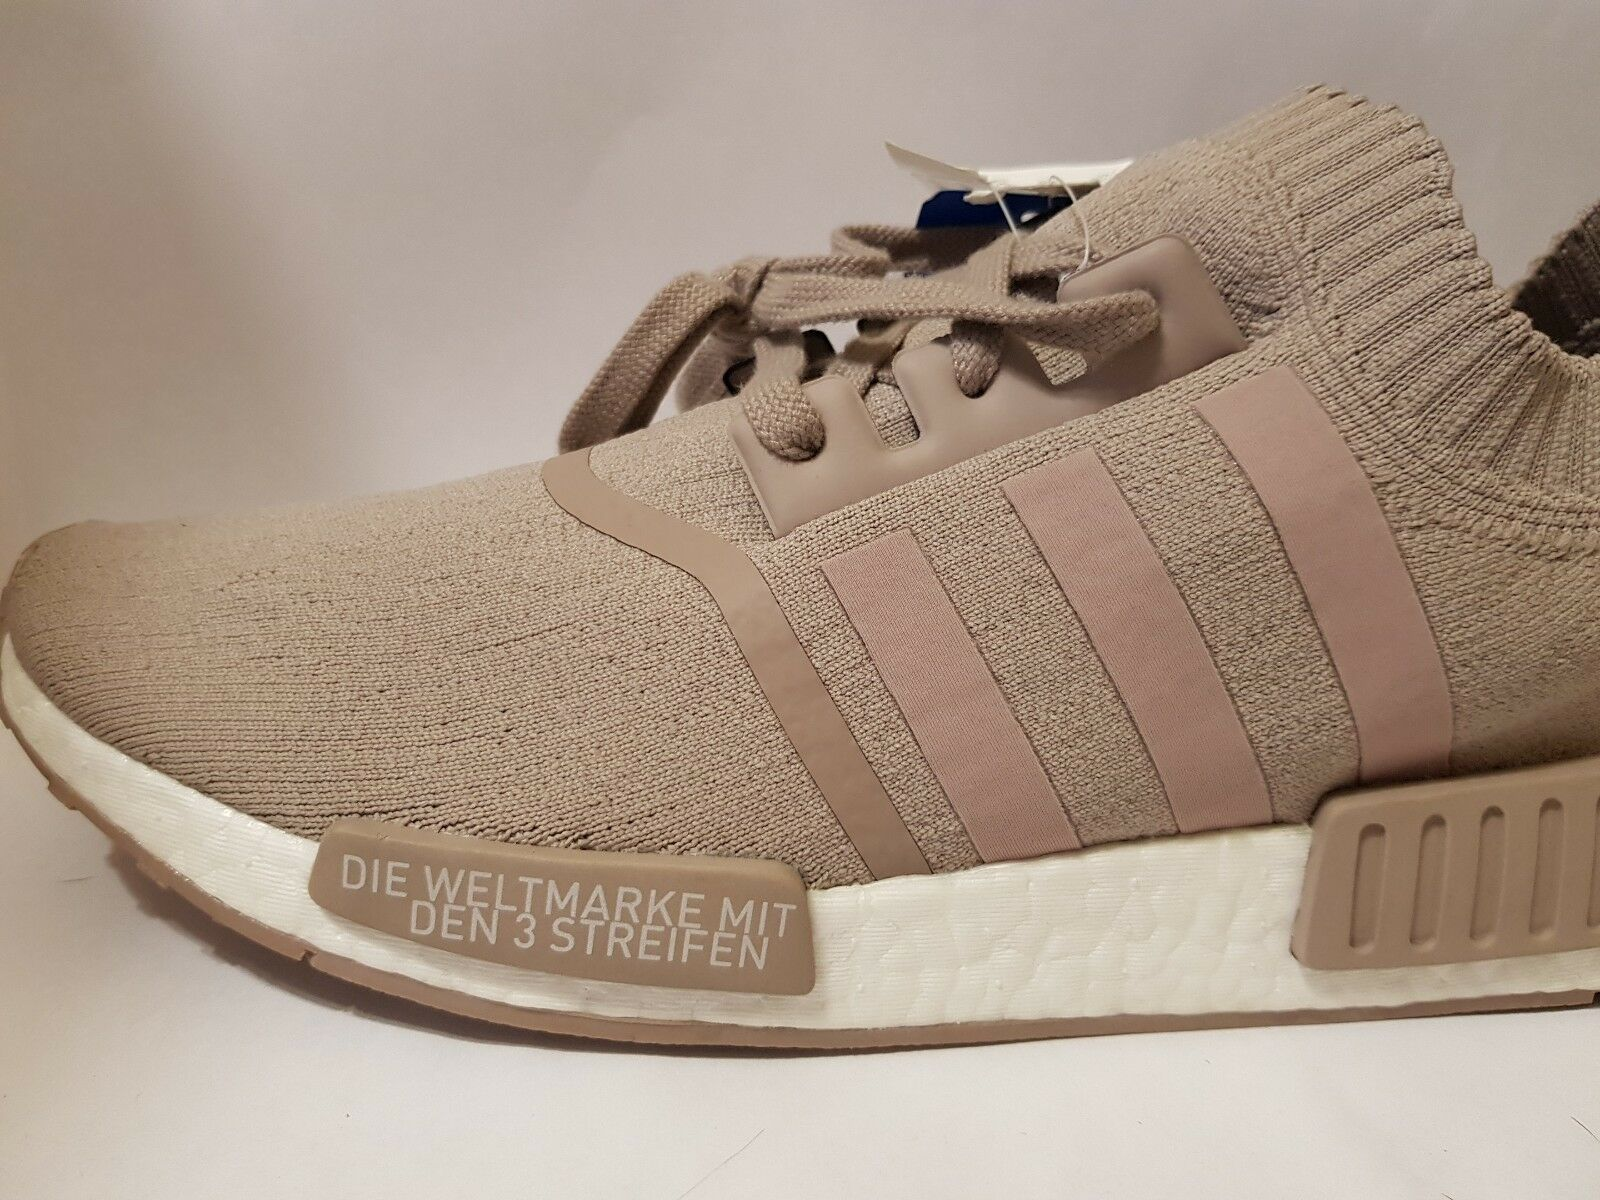 Adidas French Beige NMD Size US 12.5 Mens PK Primeknit R1 S81848